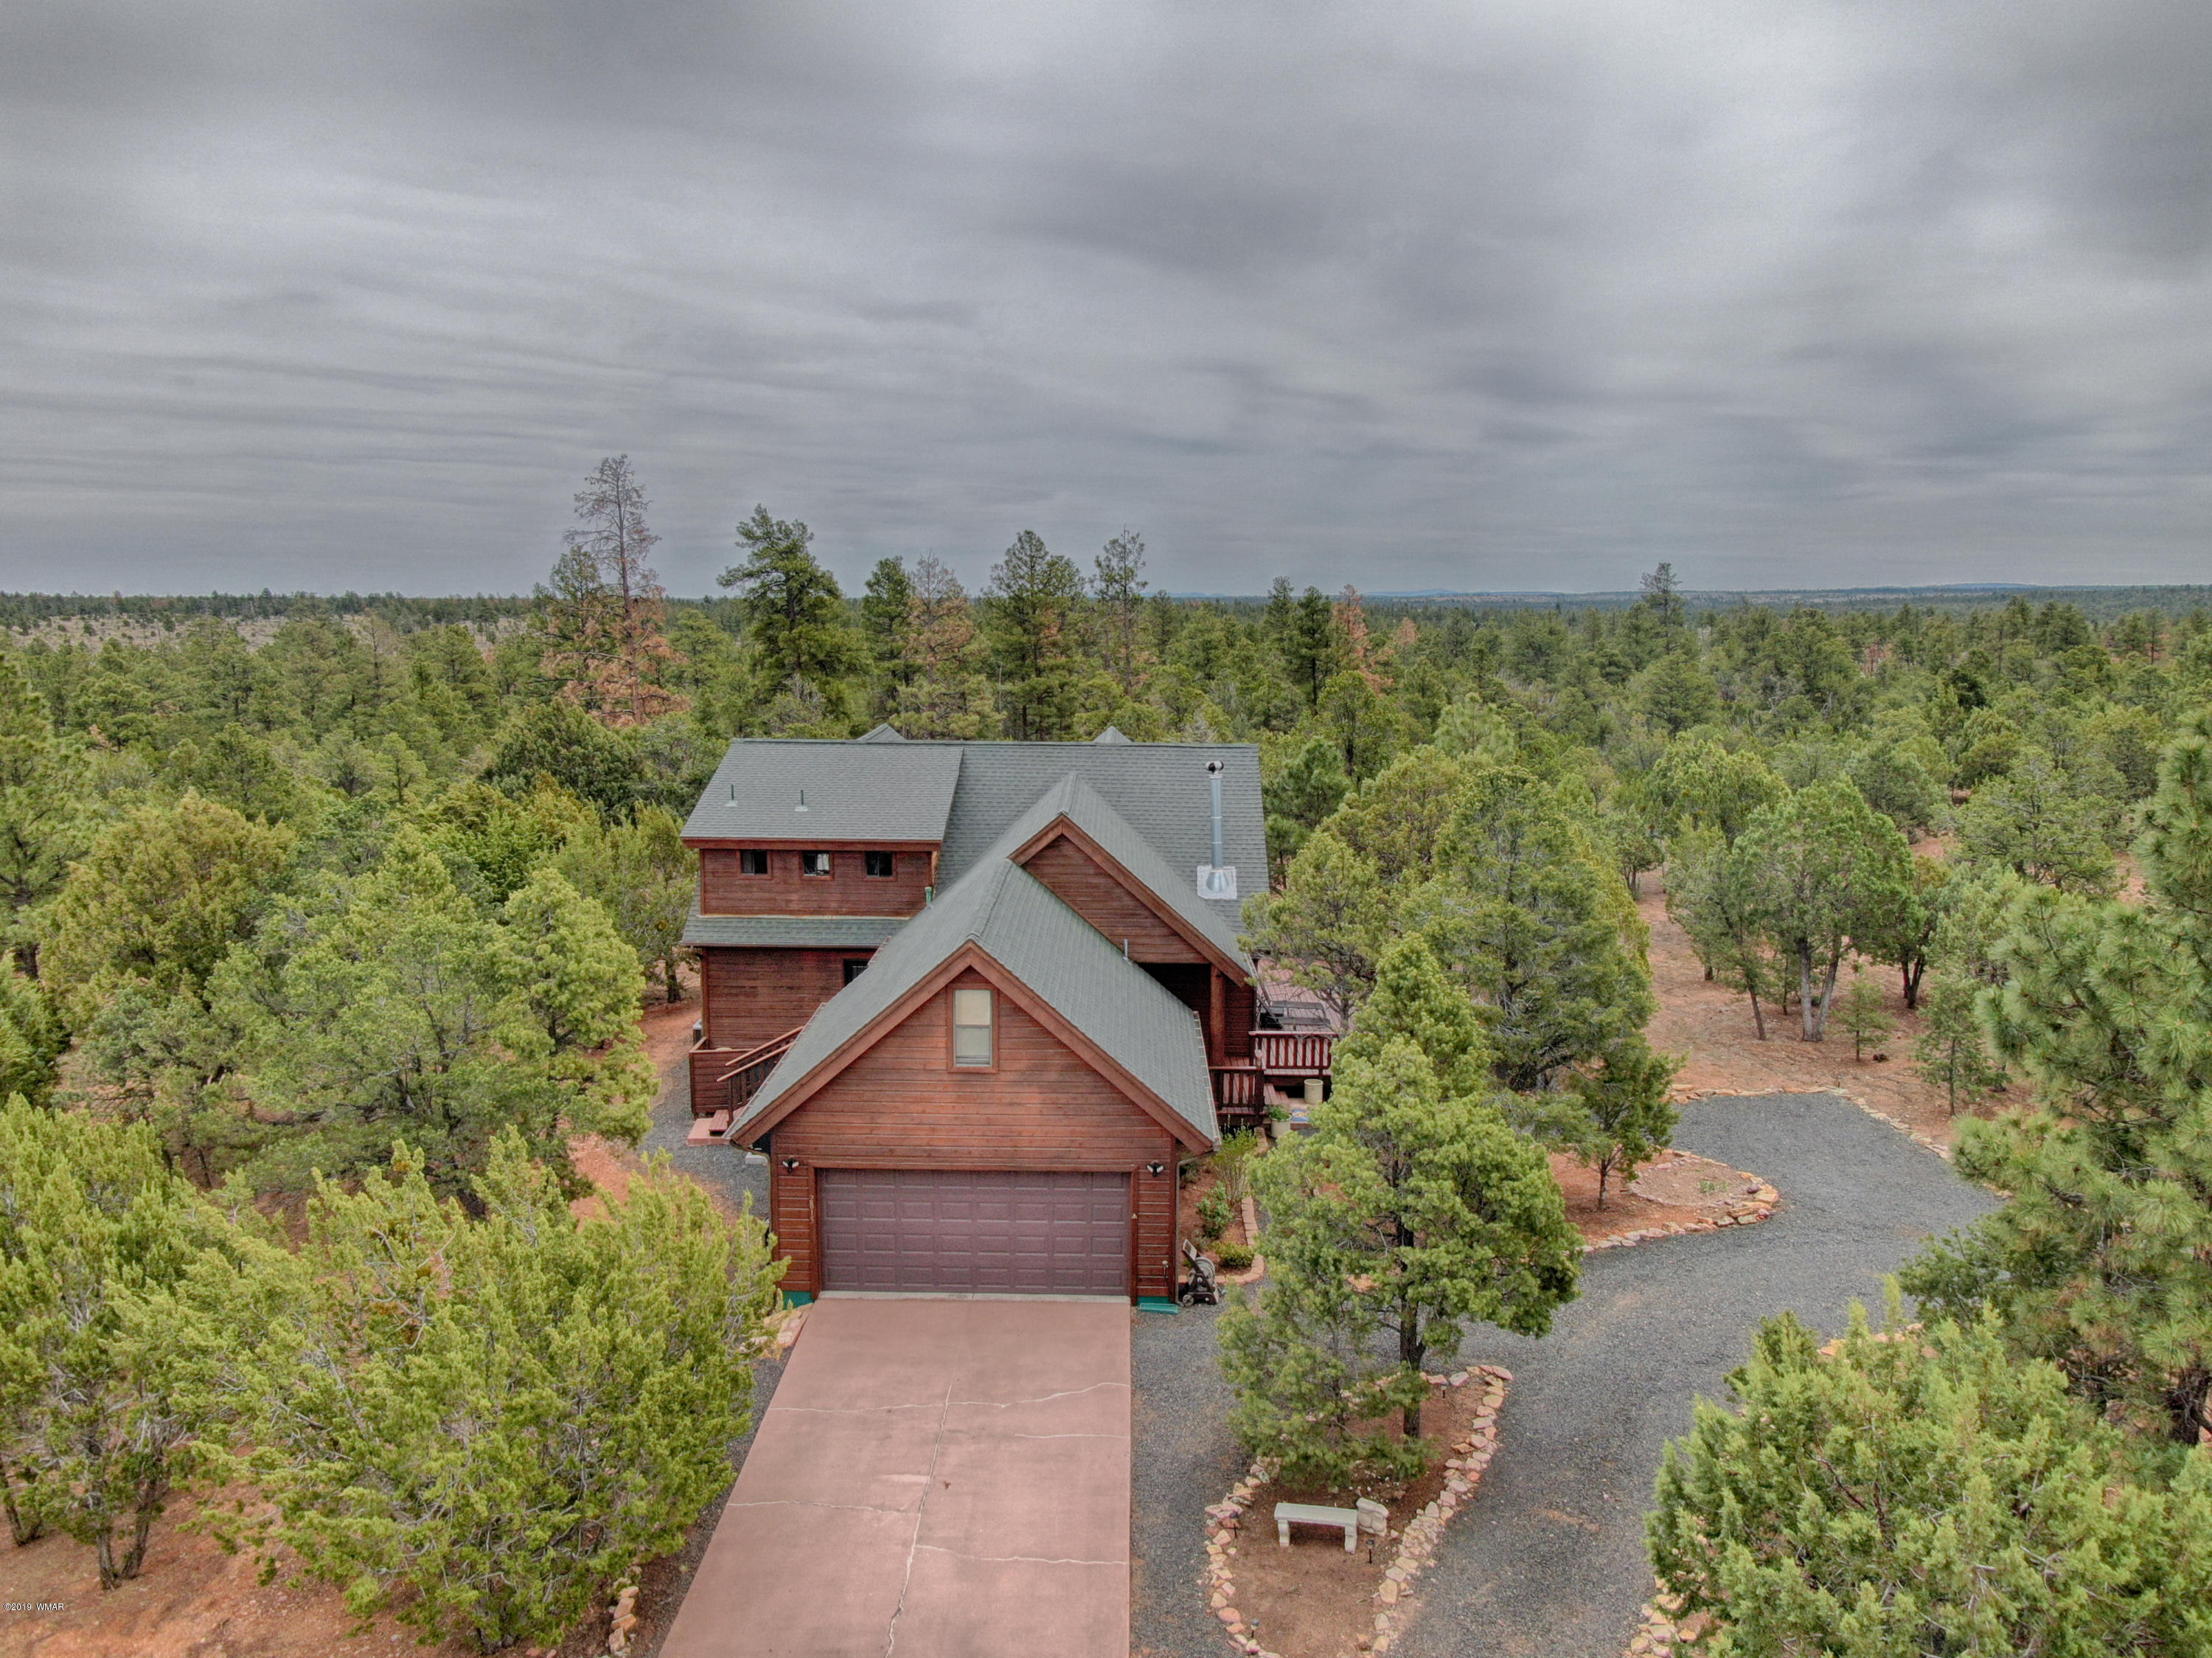 Enjoy the peaceful setting on the enormous wrap around deck that backs up directly to the National Forest. This home is located in the prestigious Mogollon Estates surrounded by tall Ponderosa Pines. Other features include vaulted ceilings, open floor plan, loft area, new AC/Furnace, solid hickory flooring, backup generator, wood stove, fresh stain on the exterior, newly remodeled bathroom, Quartz countertop, two master bedroom plan, slate tile, two car garage, paved streets, and a second floor balcony that overlooks the back yard and into the National Forest. Click on the virtual tour link to take a tour of the home!